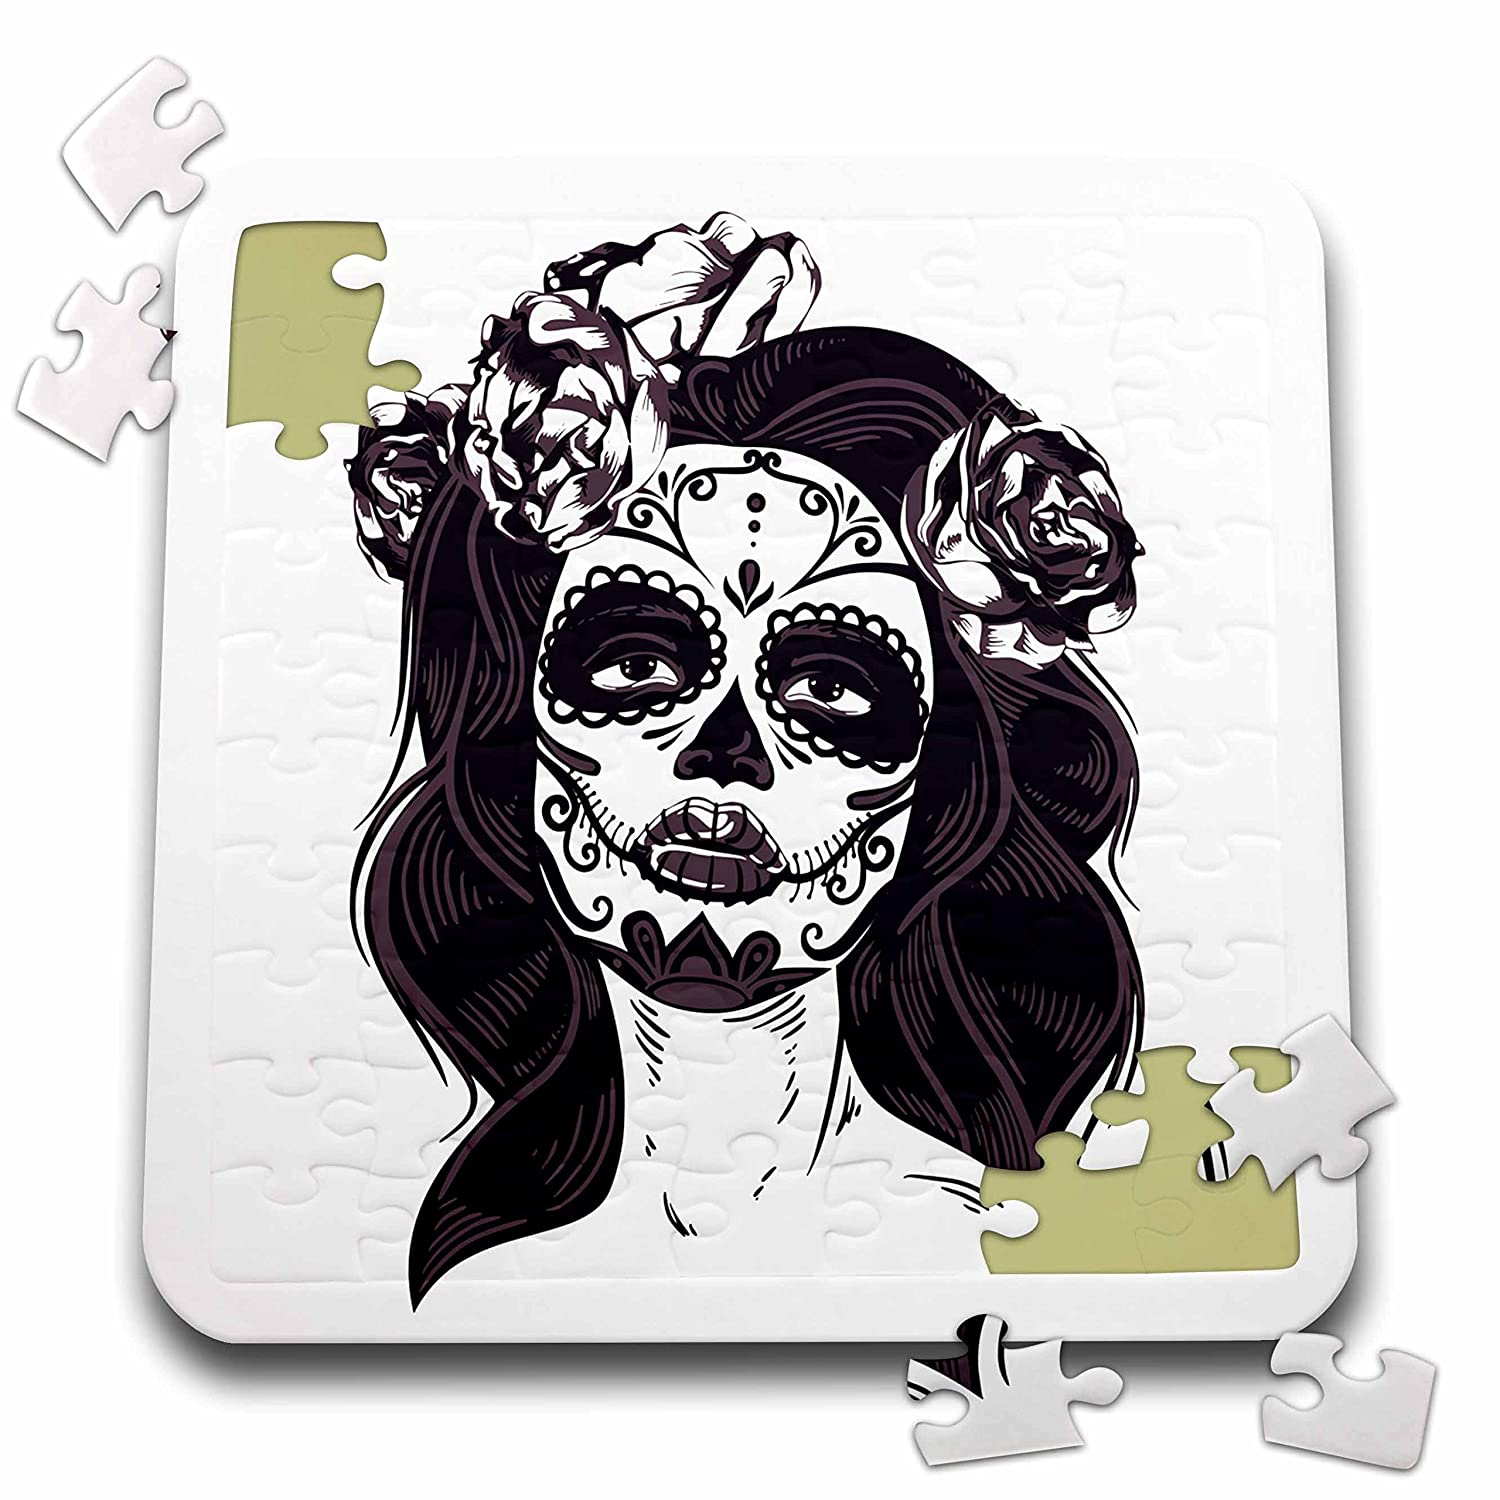 Sven Herkenrath Skull - Female Skull with Flowers in Hair Gothic Day of the Dead - 10x10 Inch Puzzle (pzl_254367_2)